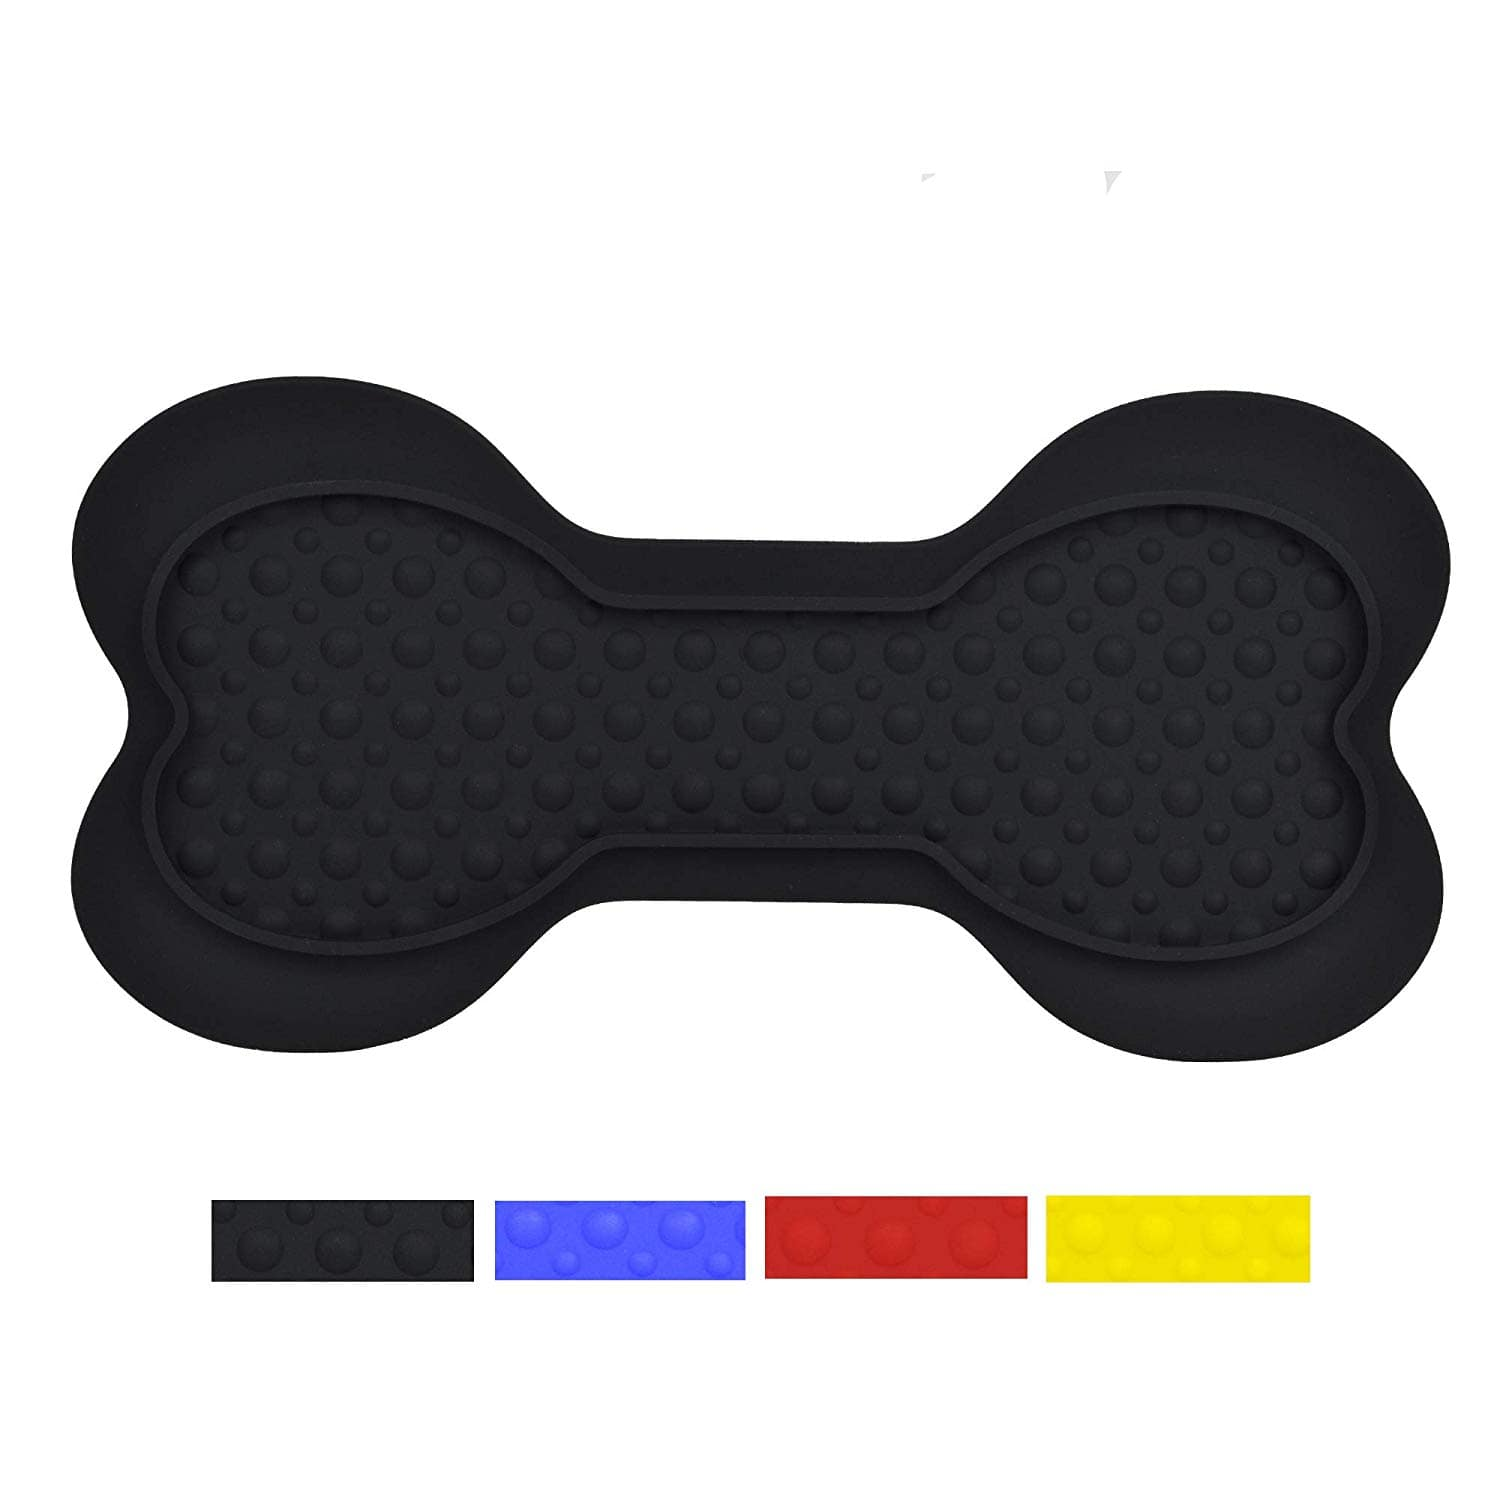 Silicone Dog Lick Bone Bowl (1 Pack, Black) $5.99